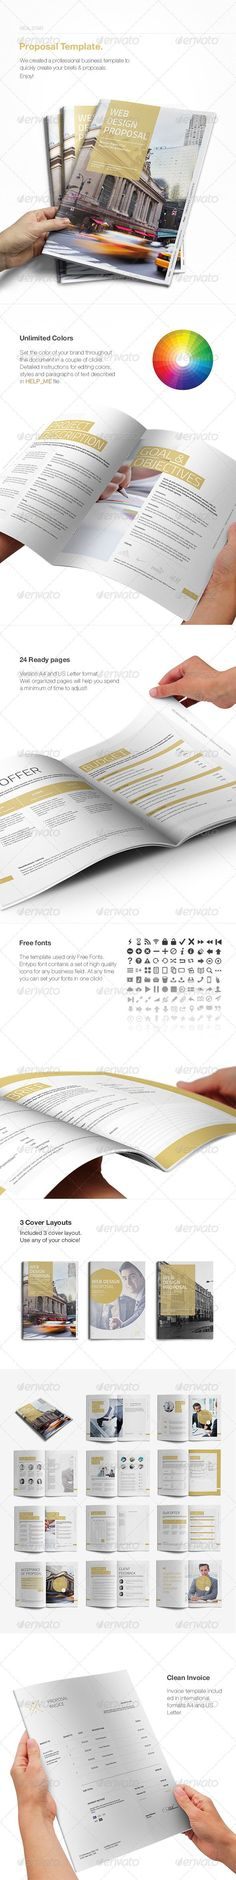 Commercial Proposal Format Alluring Commercial Proposal Template #09  Commercial Proposal  Pinterest .